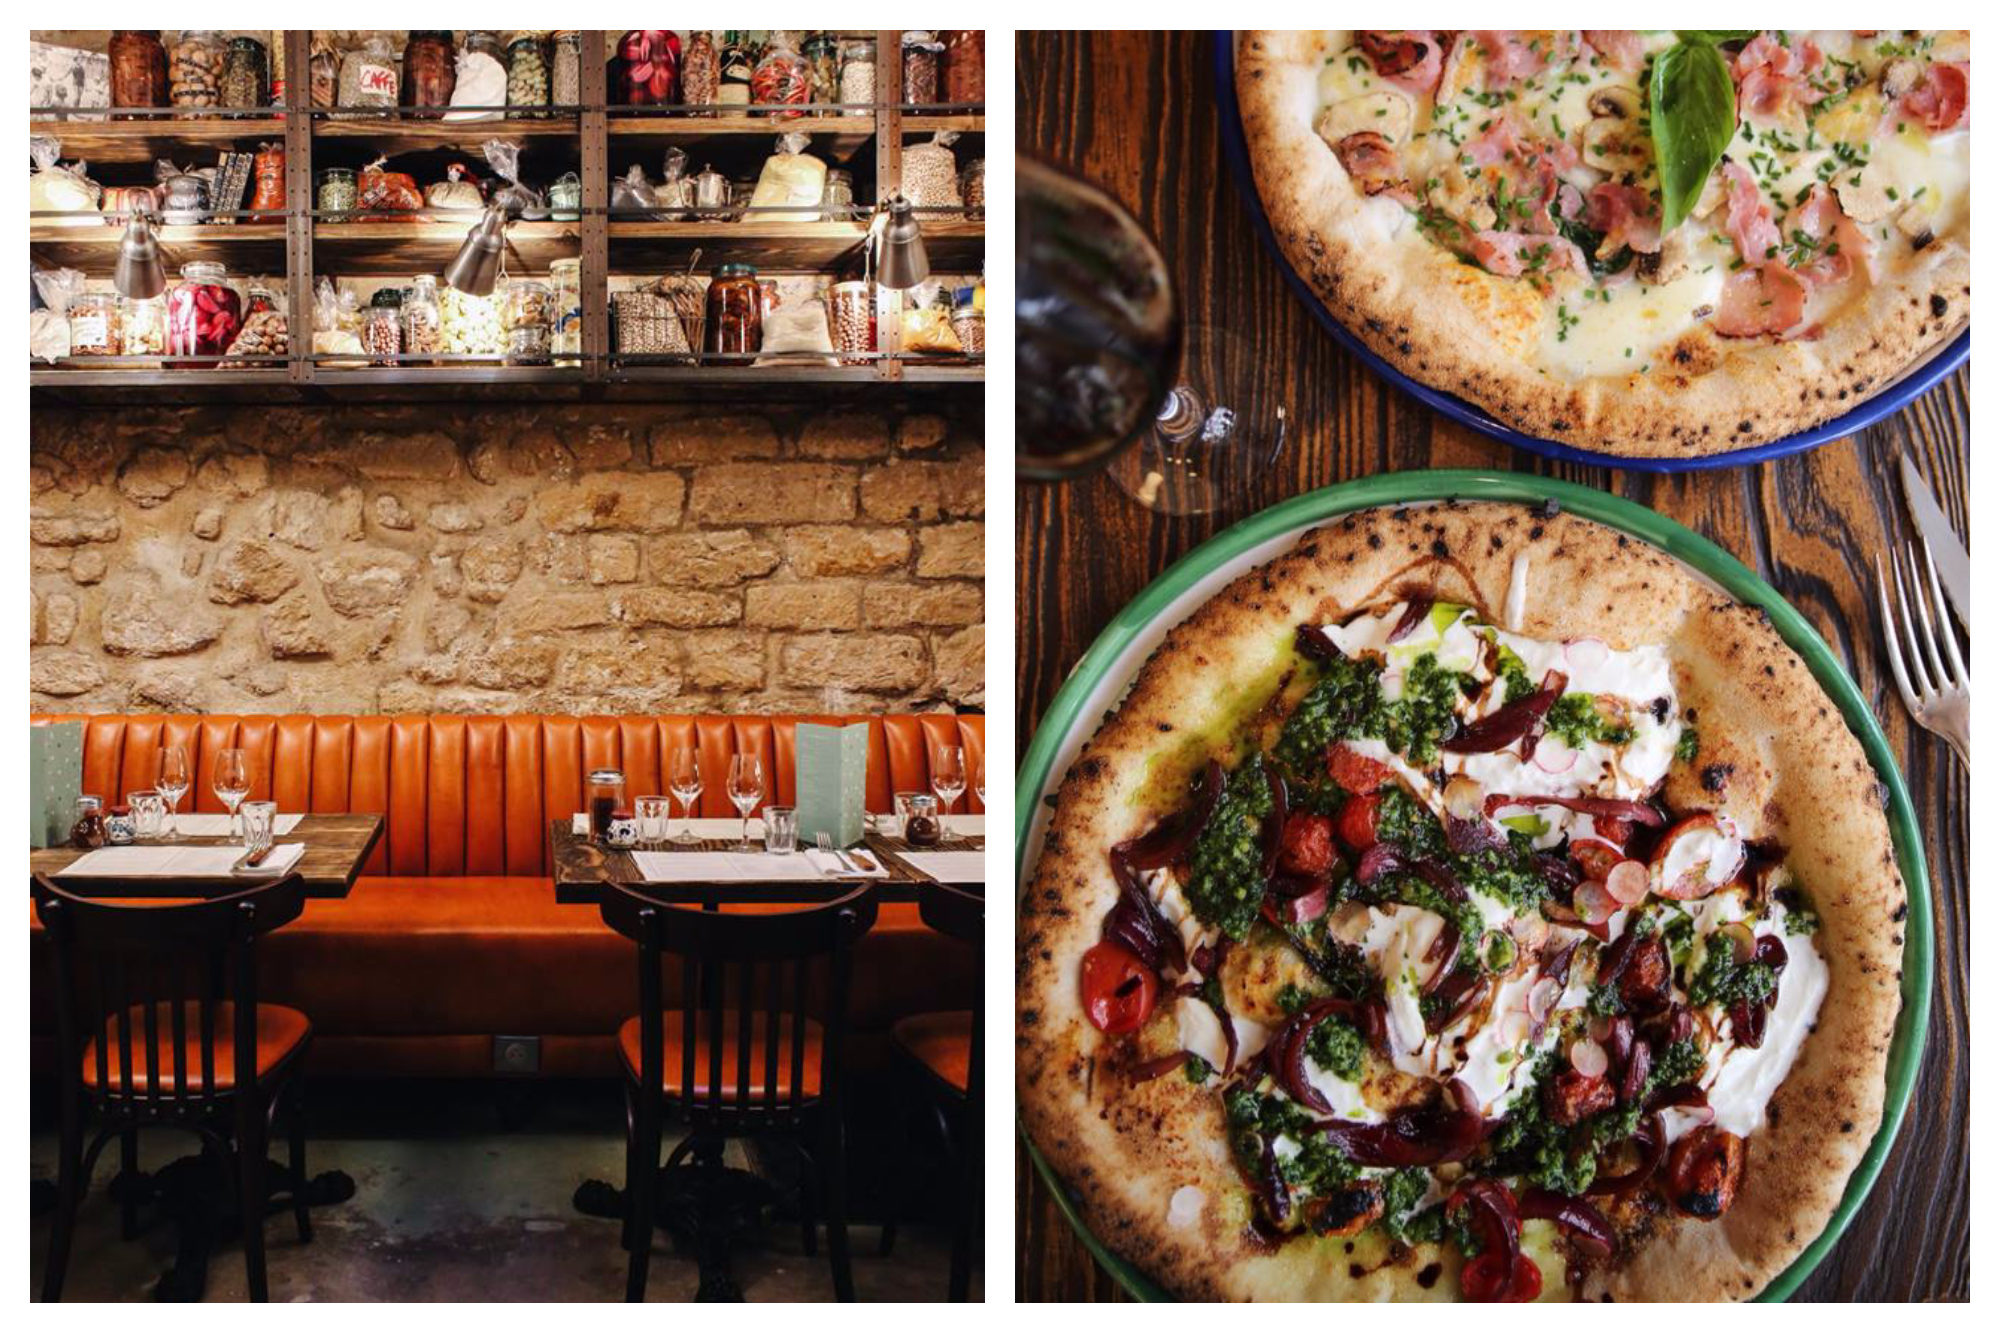 The shabby chic interiors of BigLove Caffè, with exposed stone walls, waxy orange banquettes and rickety shelving stacked with sundries (left). Two gluten-free pizzas, one with veggies and the other with ham, set on a wooden table besides a glass of red wine (right).